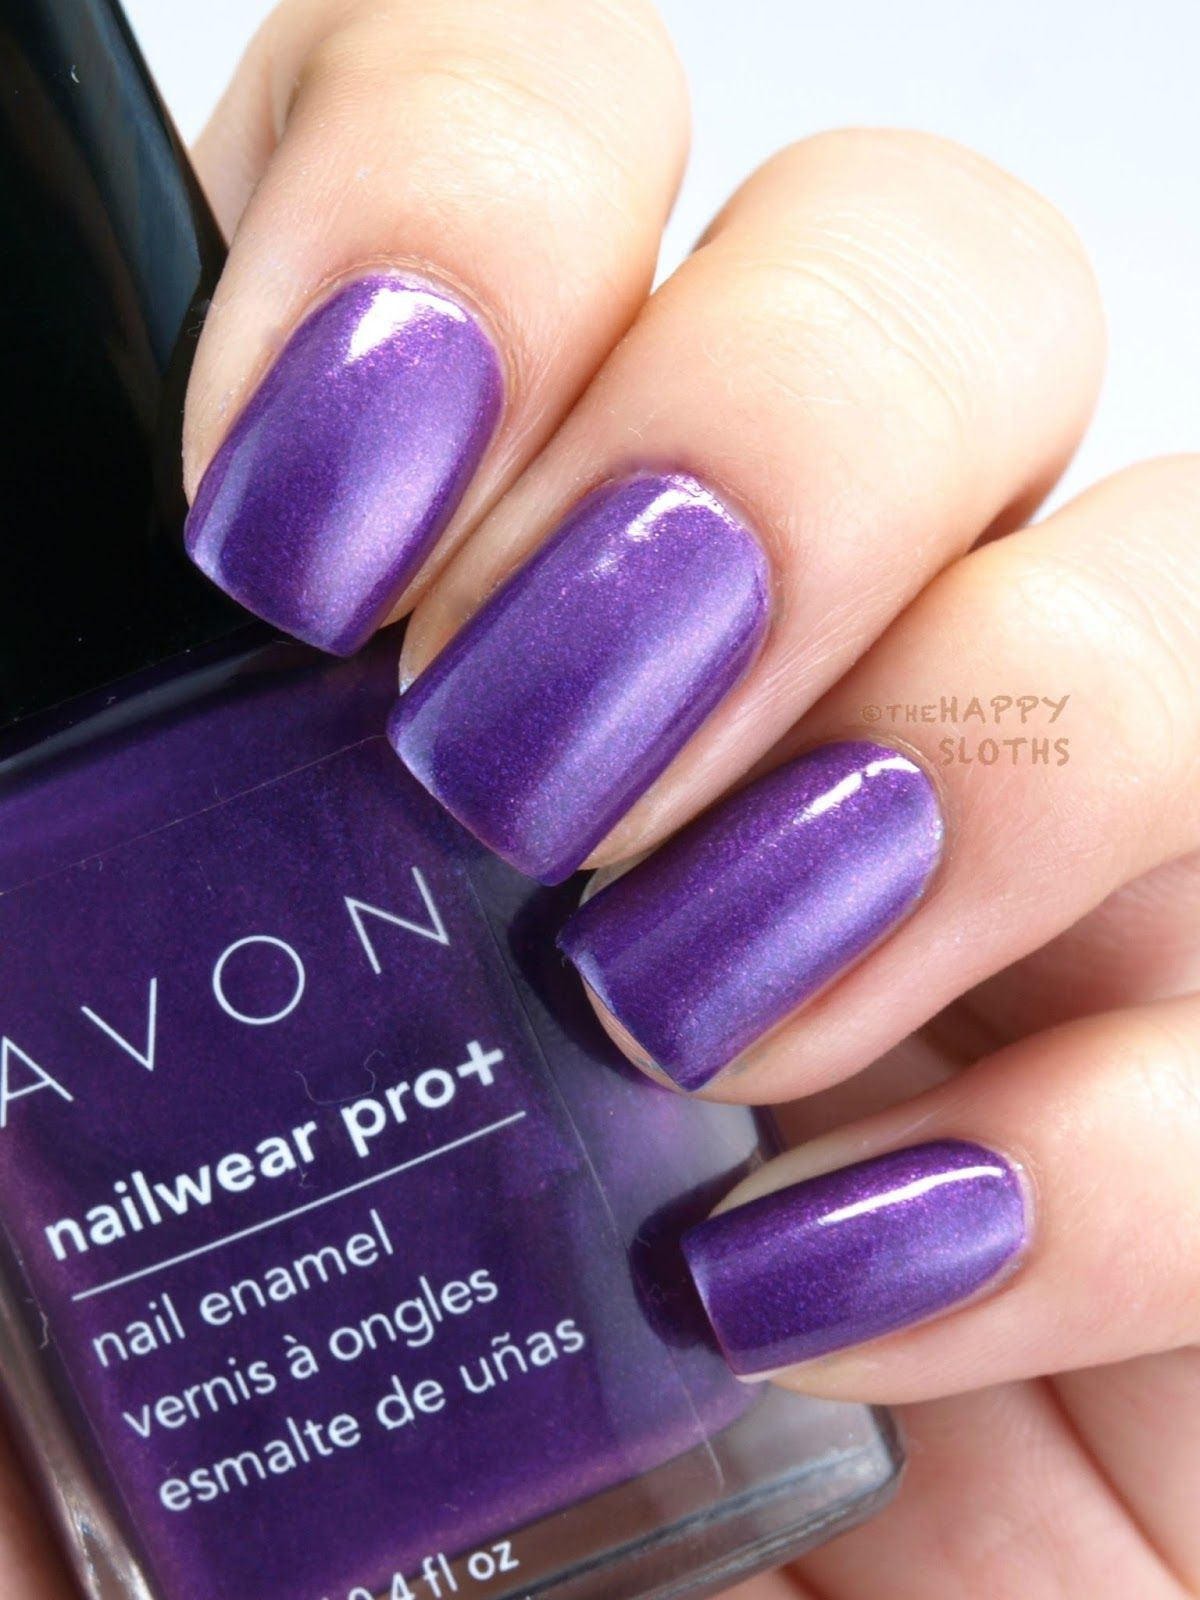 Electric Shades Collection Nailwear Pro+ Nail Enamel: Review and ...